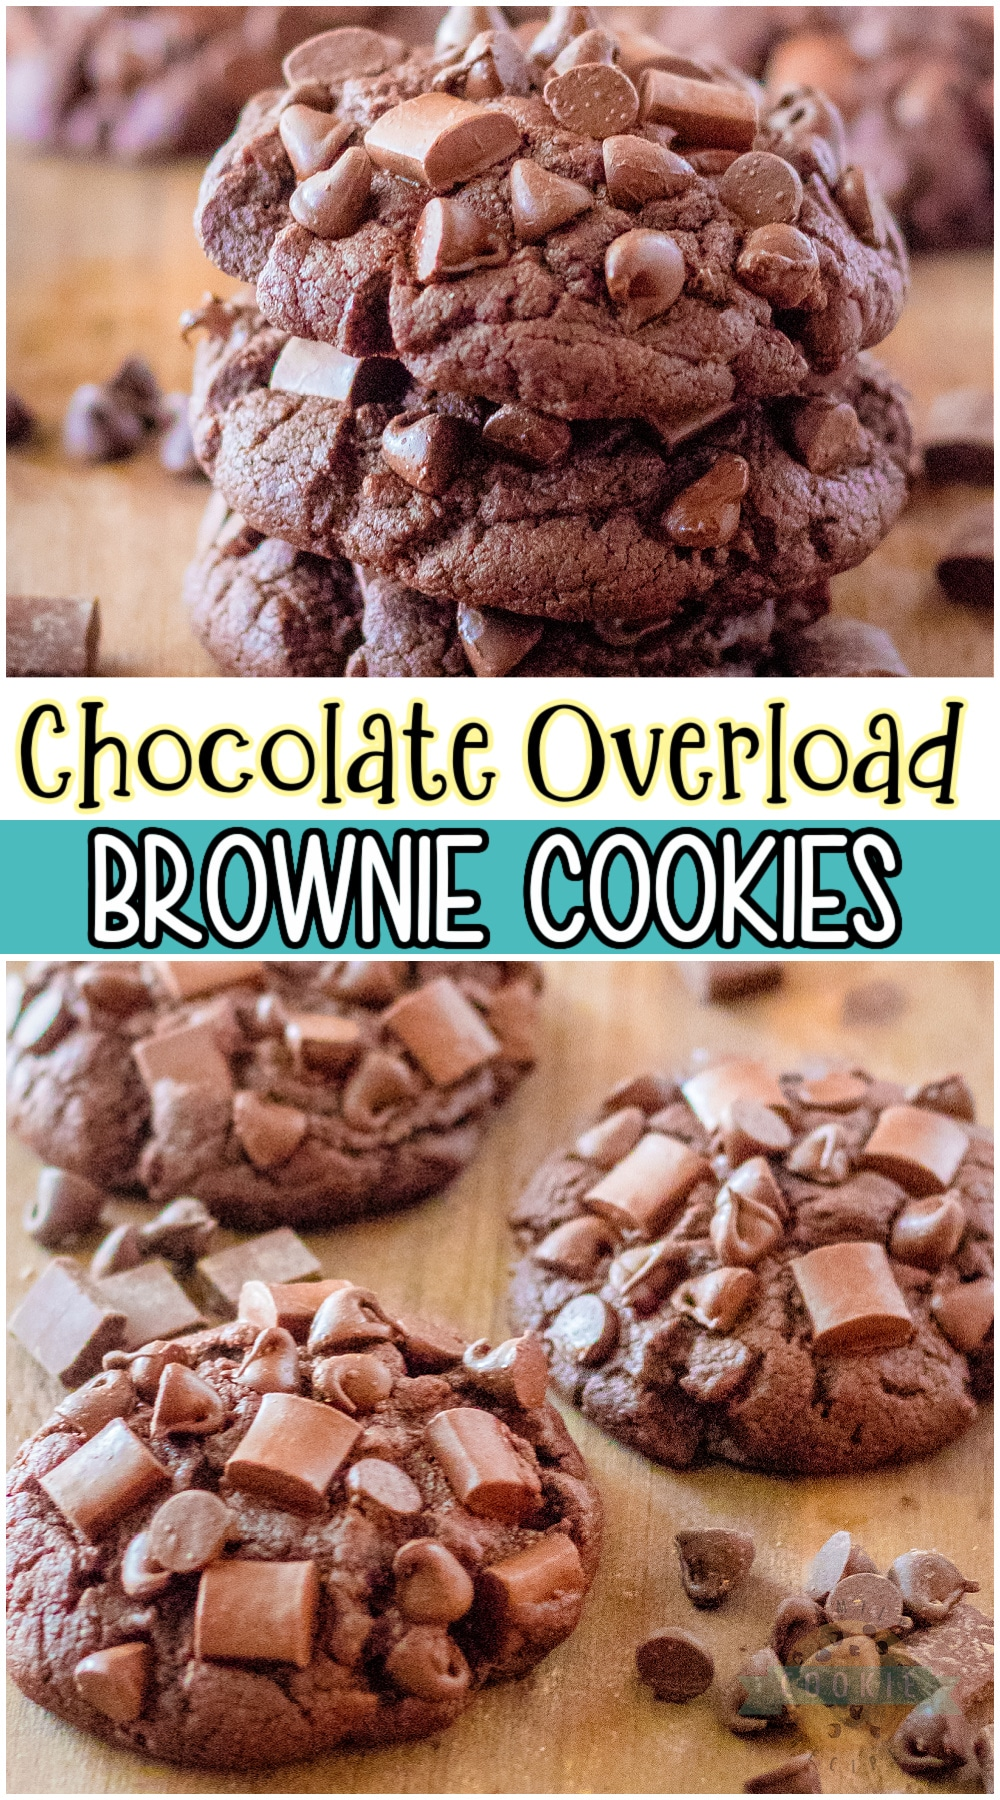 Chocolate Brownie Cookies are soft & fudgy brownies in cookie form! Recipe is loaded with chocolate and made into over-the-top GIANT cookies that everyone goes crazy for! #brownies #cookies #chocolate #baking #easyrecipe from FAMILY COOKIE RECIPES via @buttergirls